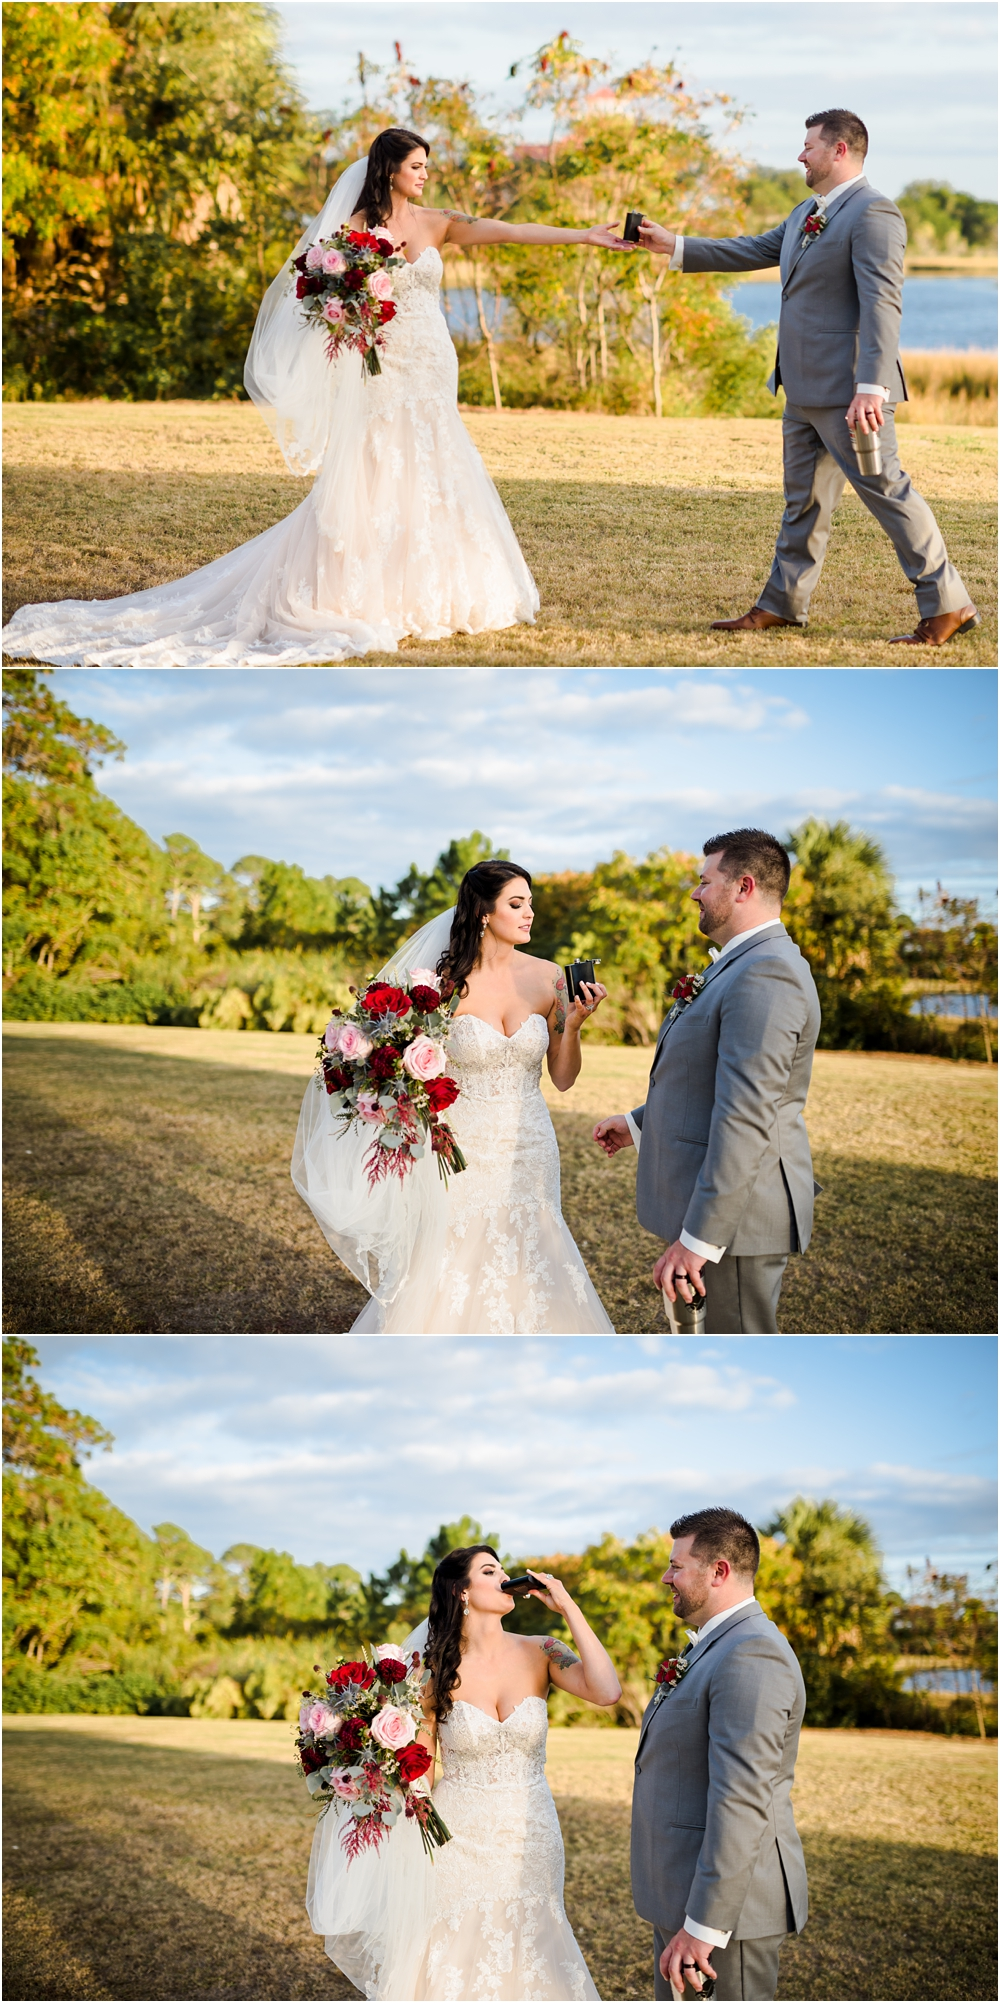 imhof-sheraton-panama-city-beach-florida-wedding-photographer-kiersten-grant-112.jpg